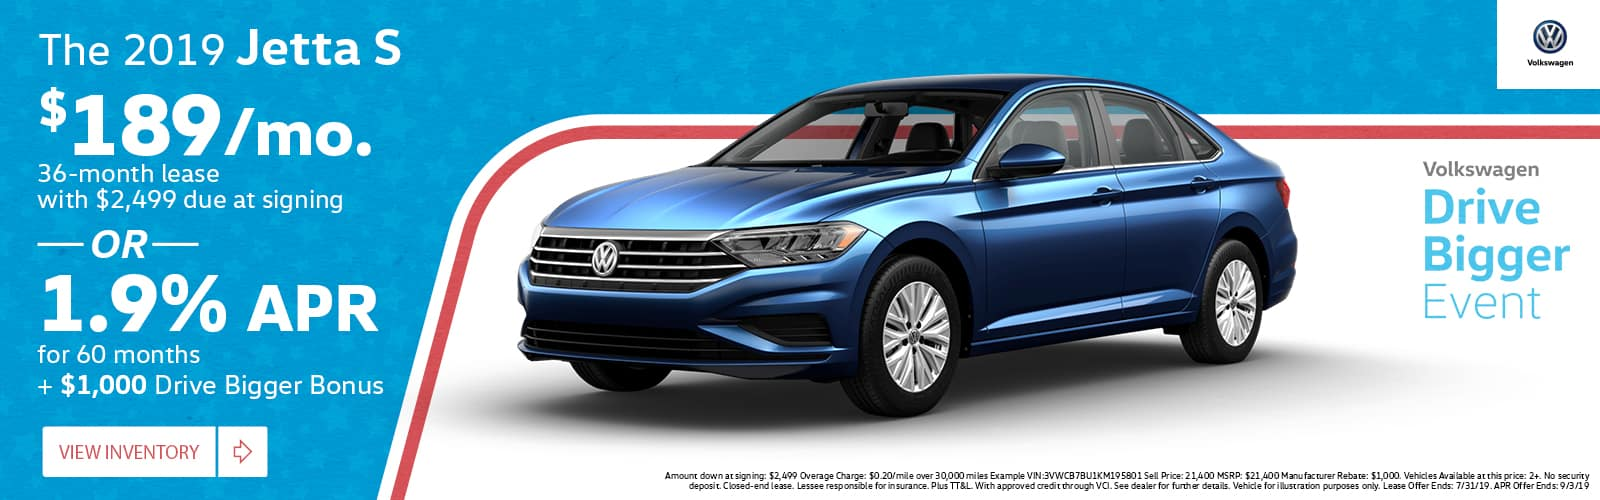 2019-vw-jetta-beaumont-tx